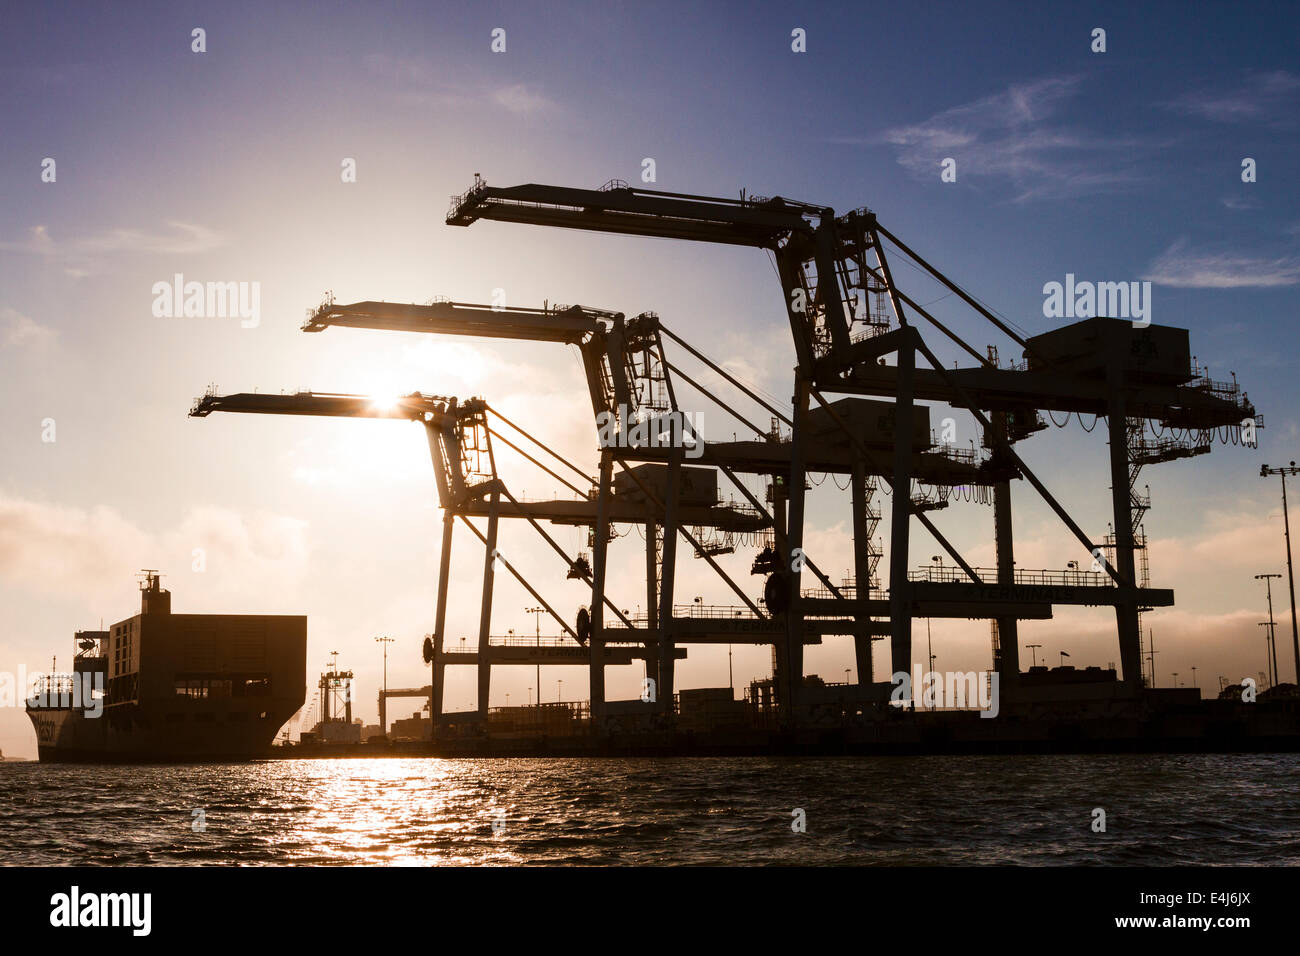 Cargo container ship approaching three giant container cranes at the Port of Oakland intermodal container terminal Stock Photo